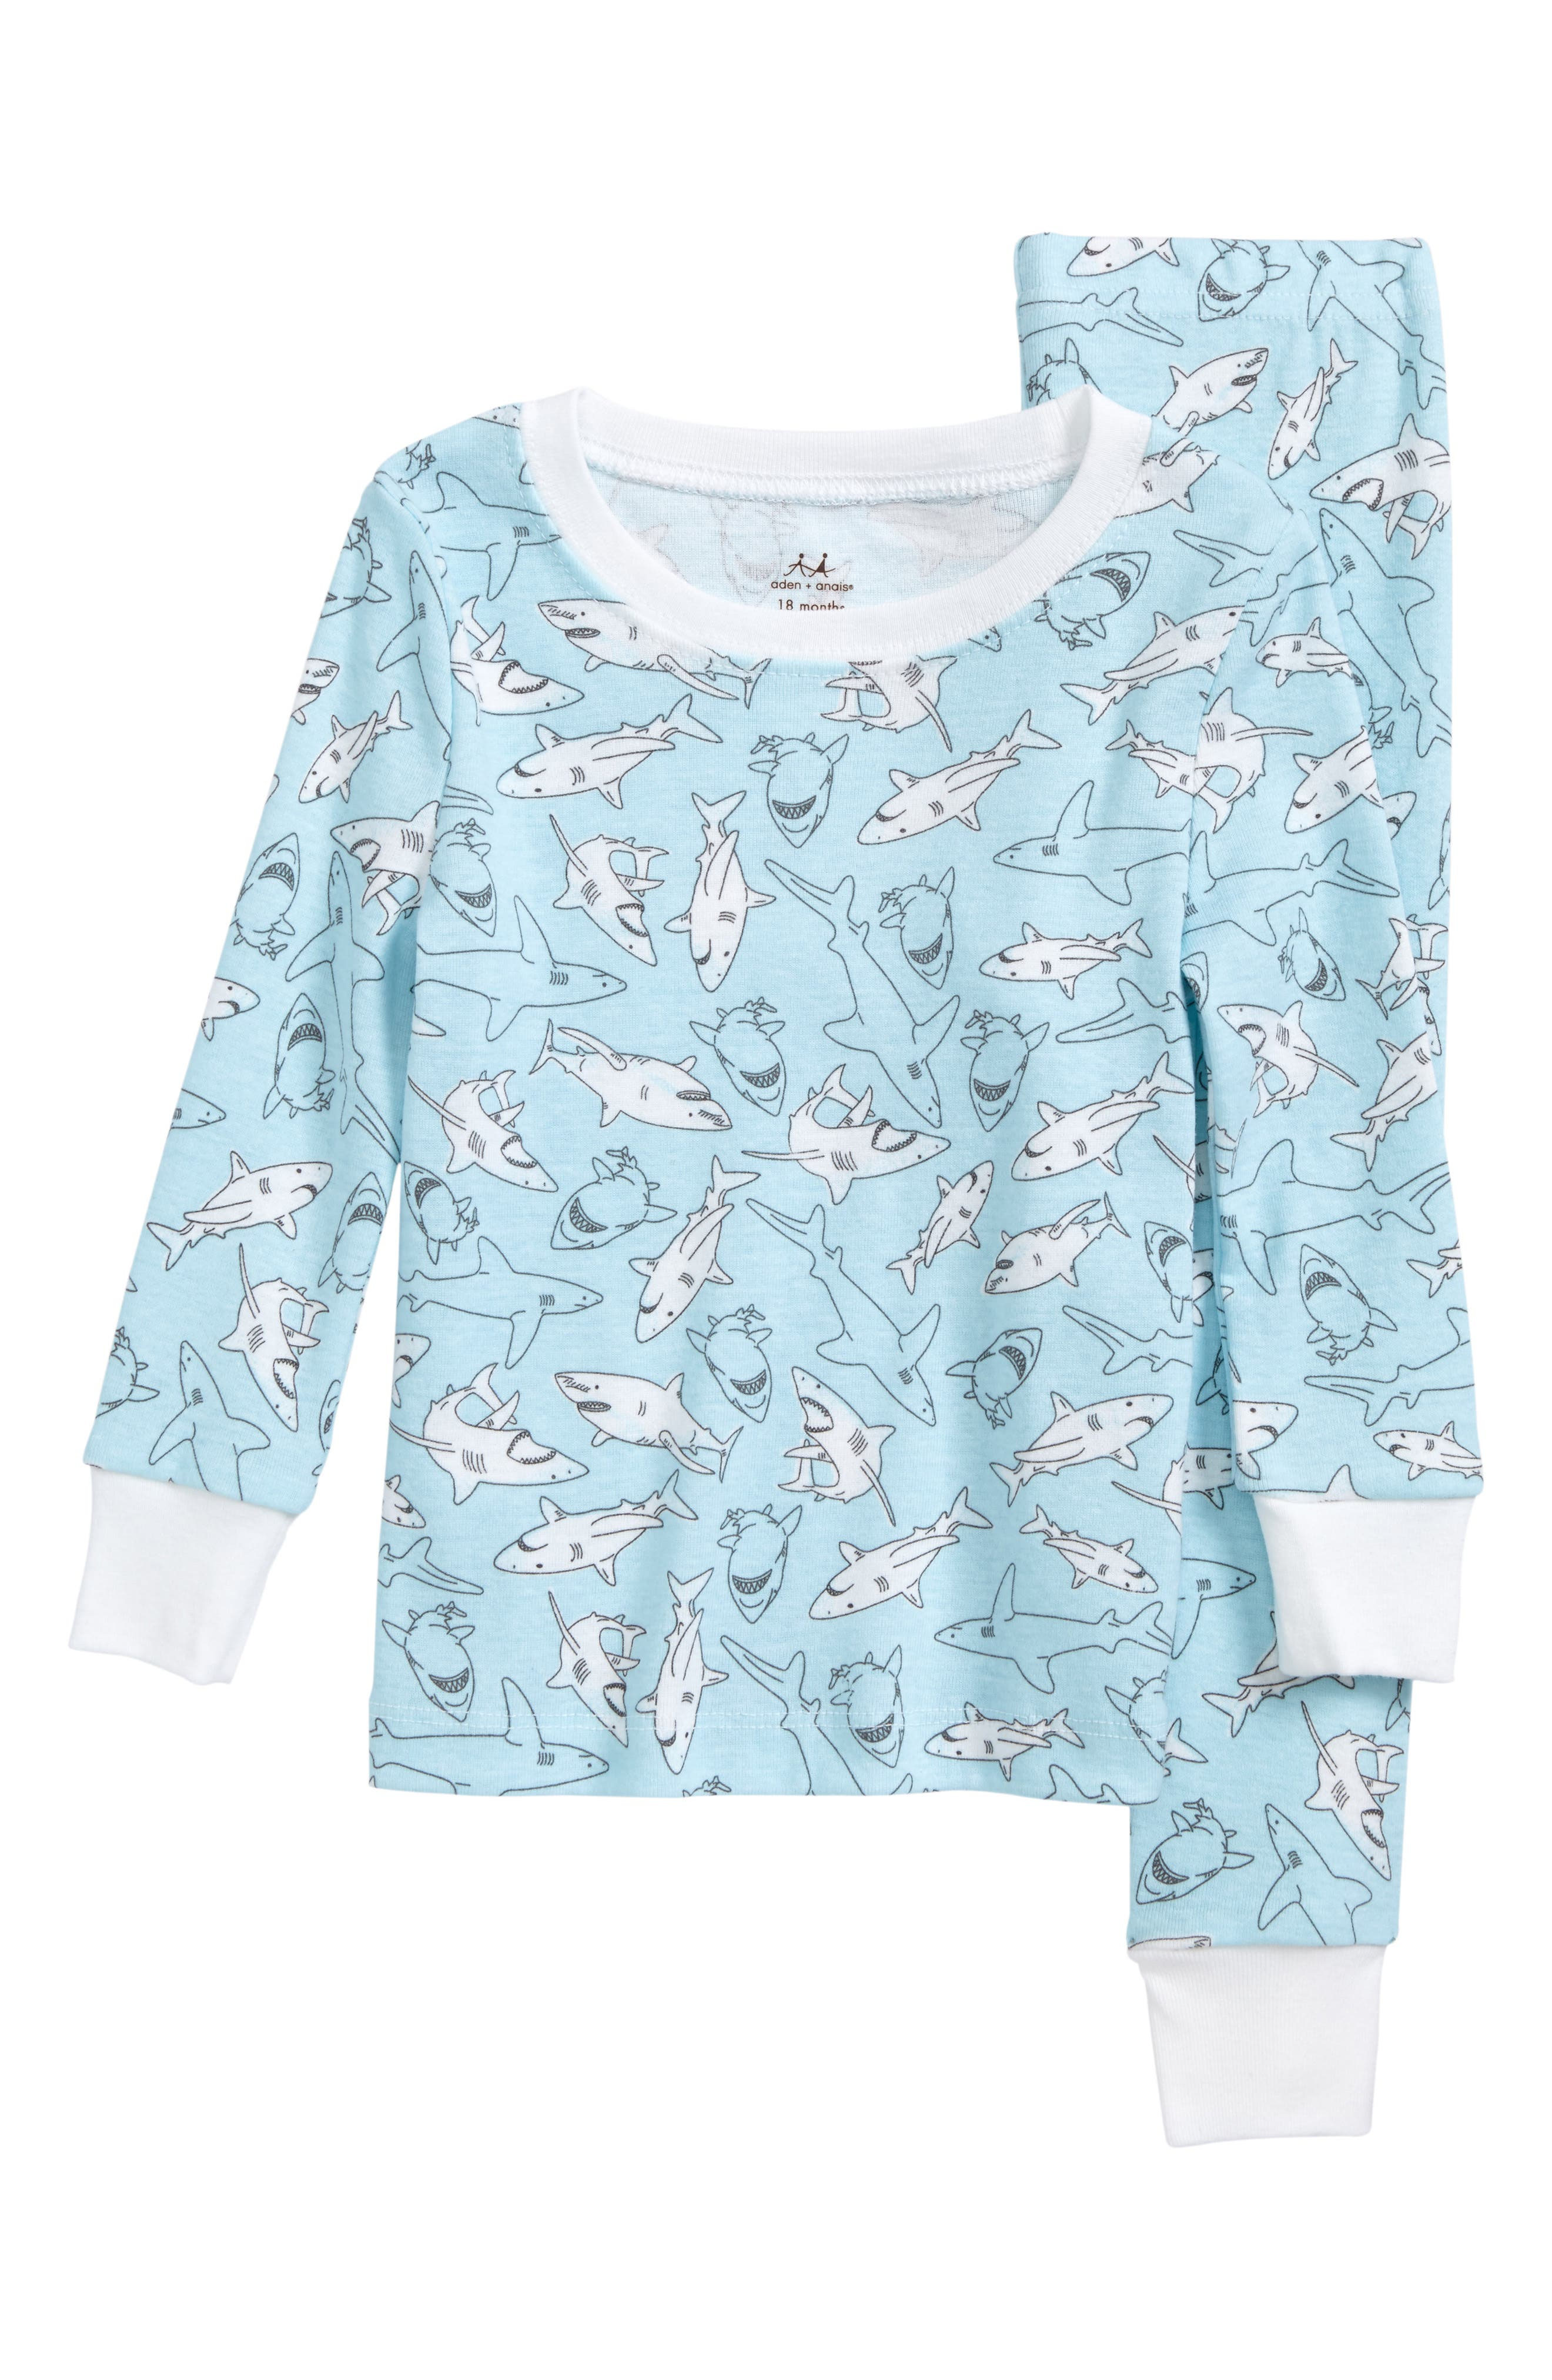 Main Image - aden + anais Fitted Two-Piece Pajamas (Baby Boys)